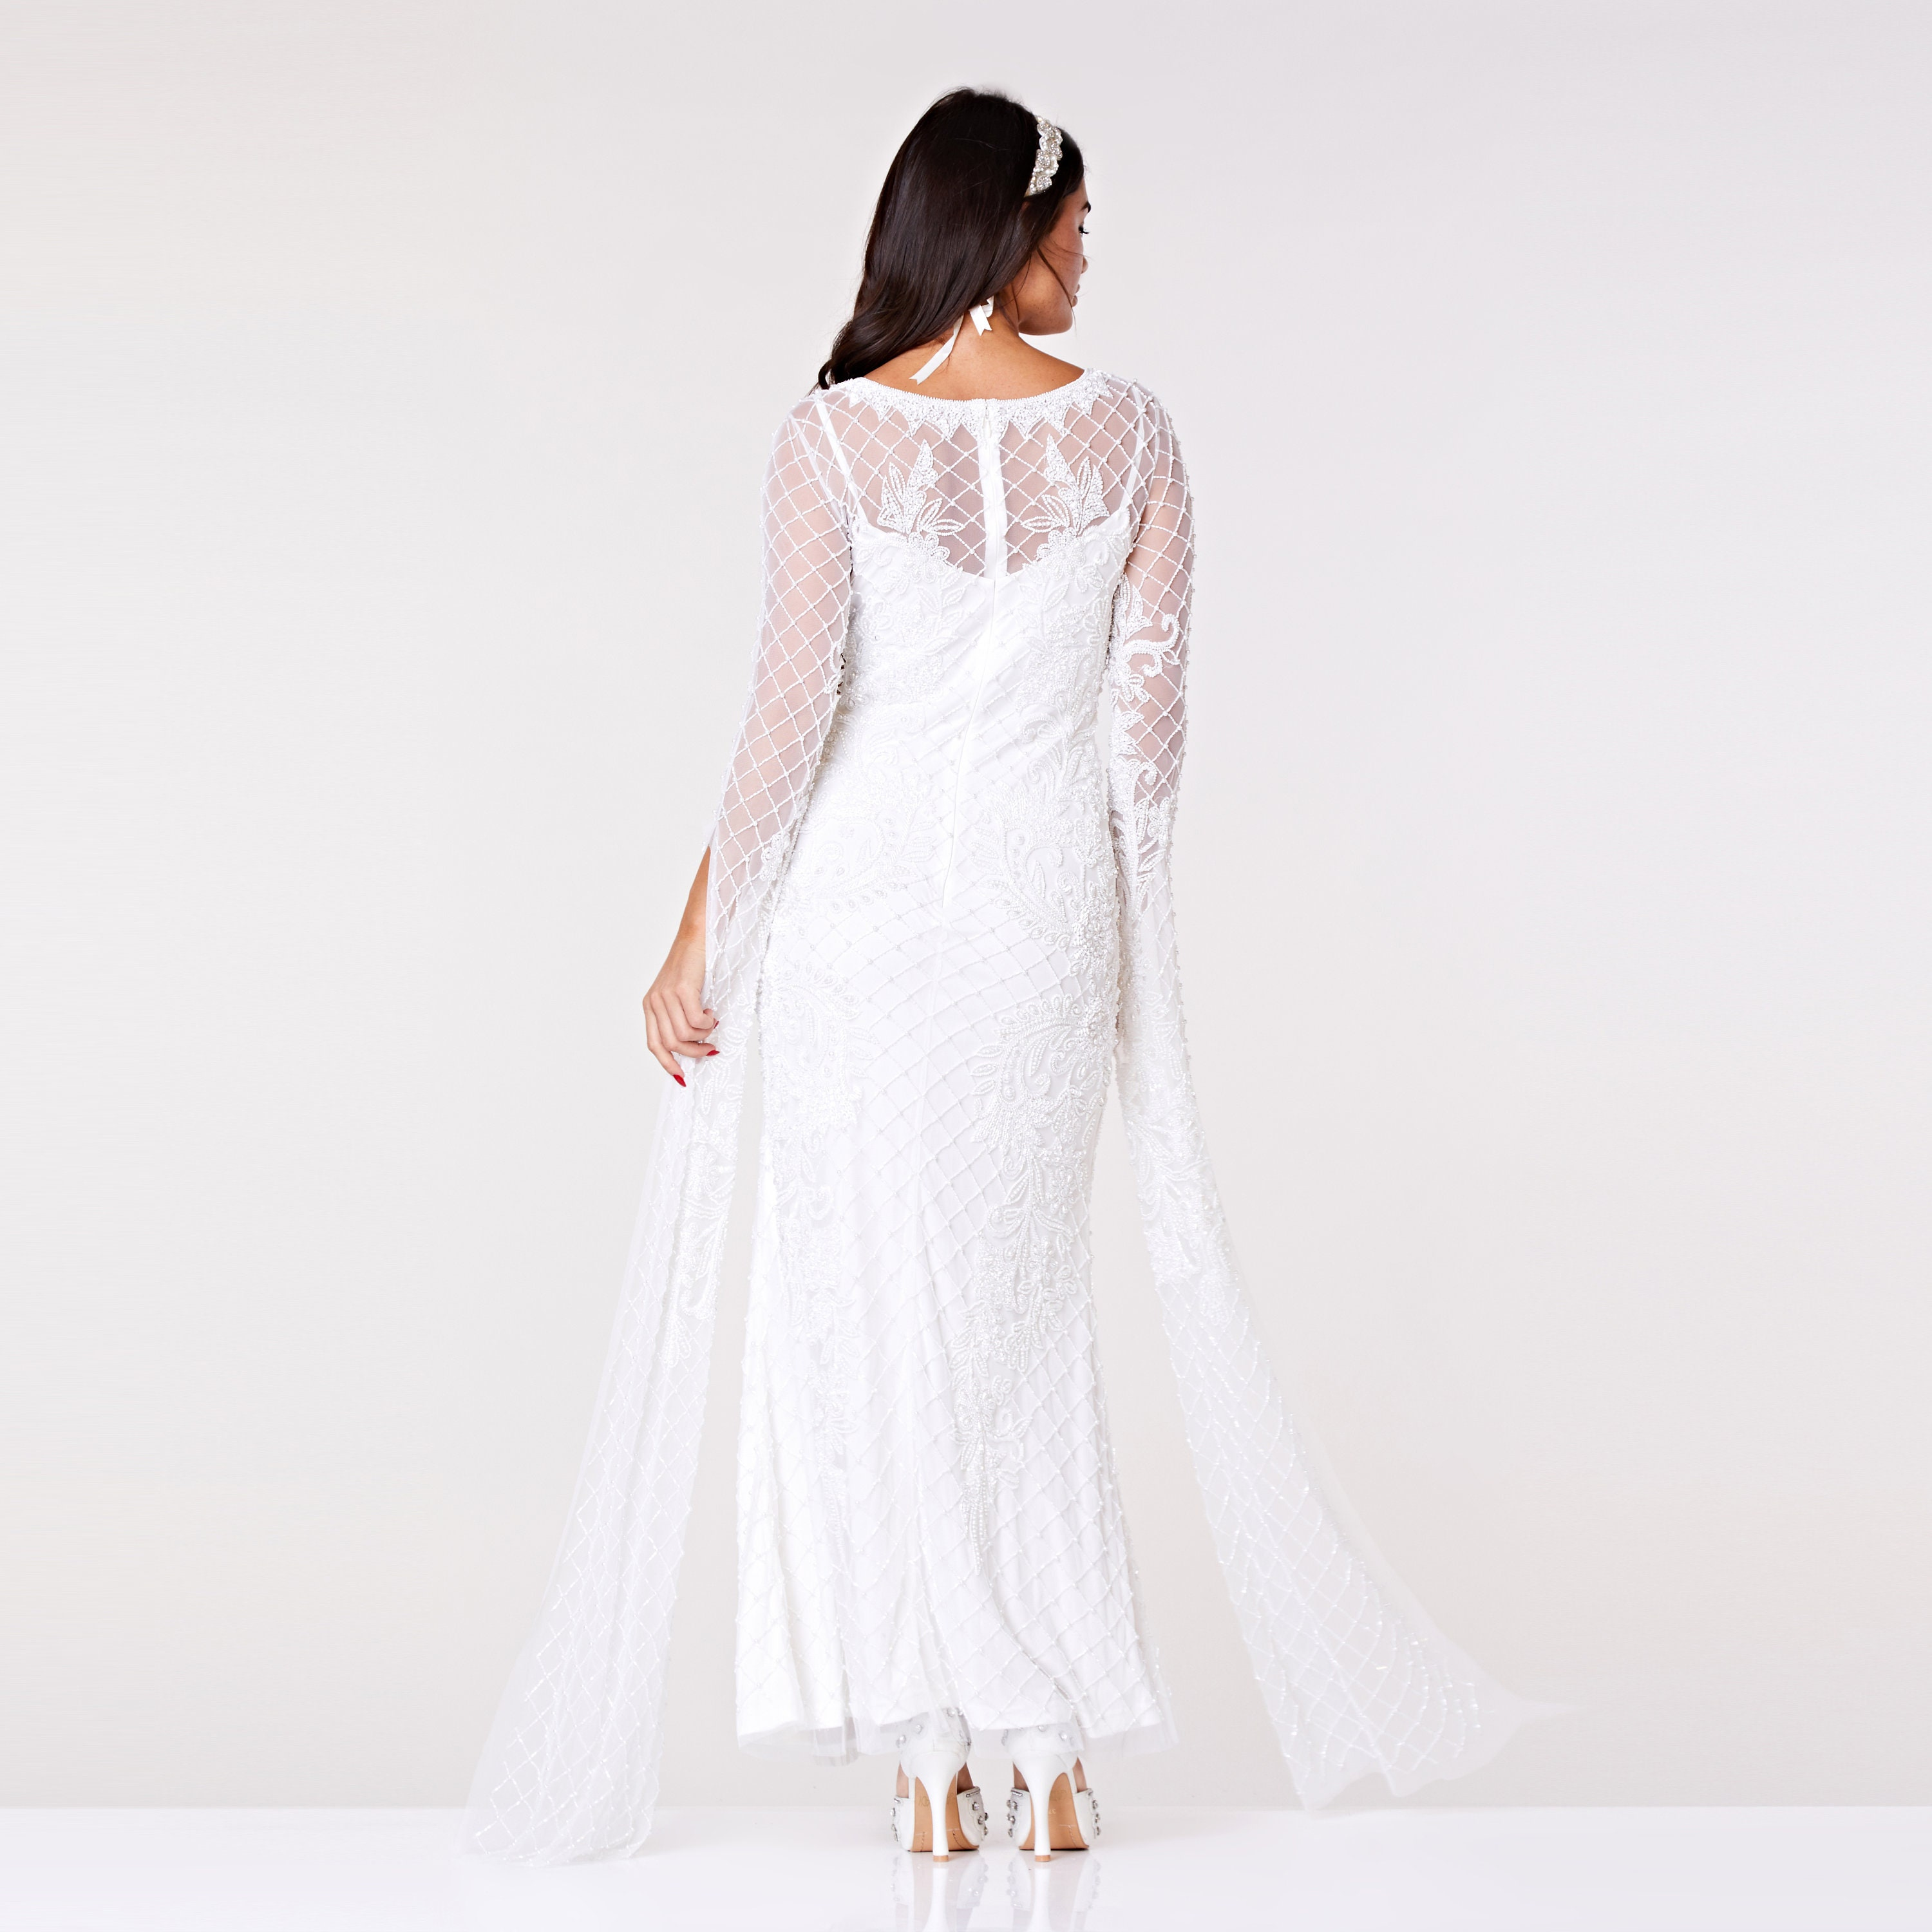 Eugine White Wedding Gown Prom Maxi Dress With Long Sleeves 20s Flapper Great Gatsby Formal Speakeasy Wedding Reception Bridesmaids Prom,Classy Formal Wedding Guest Dresses